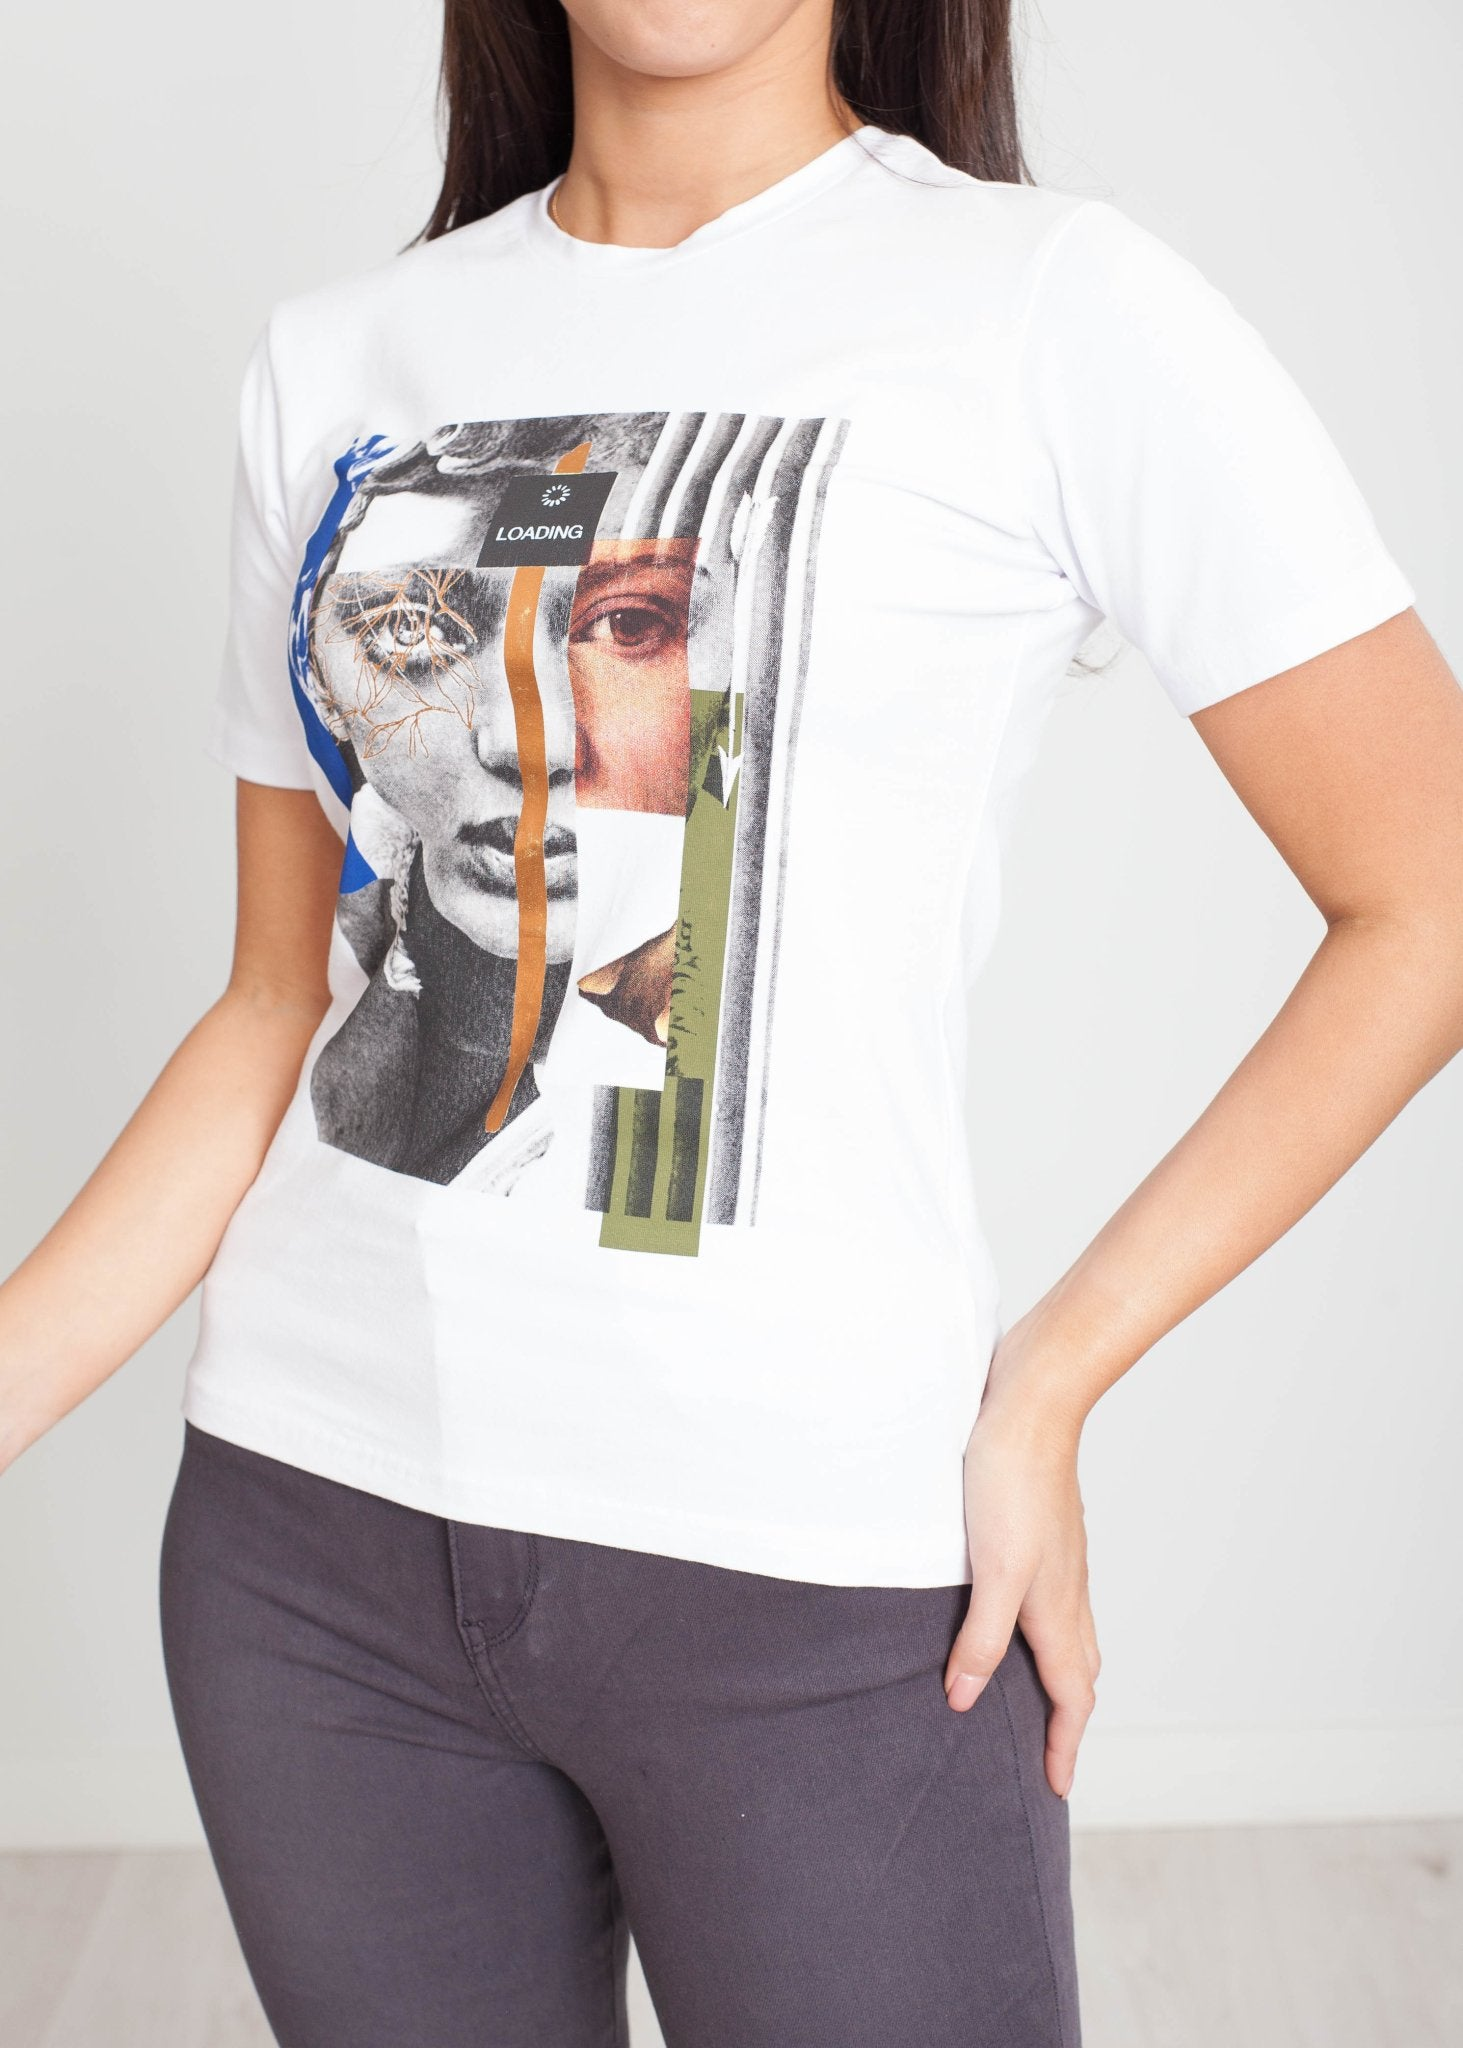 Tina T-Shirt With Face Print - The Walk in Wardrobe